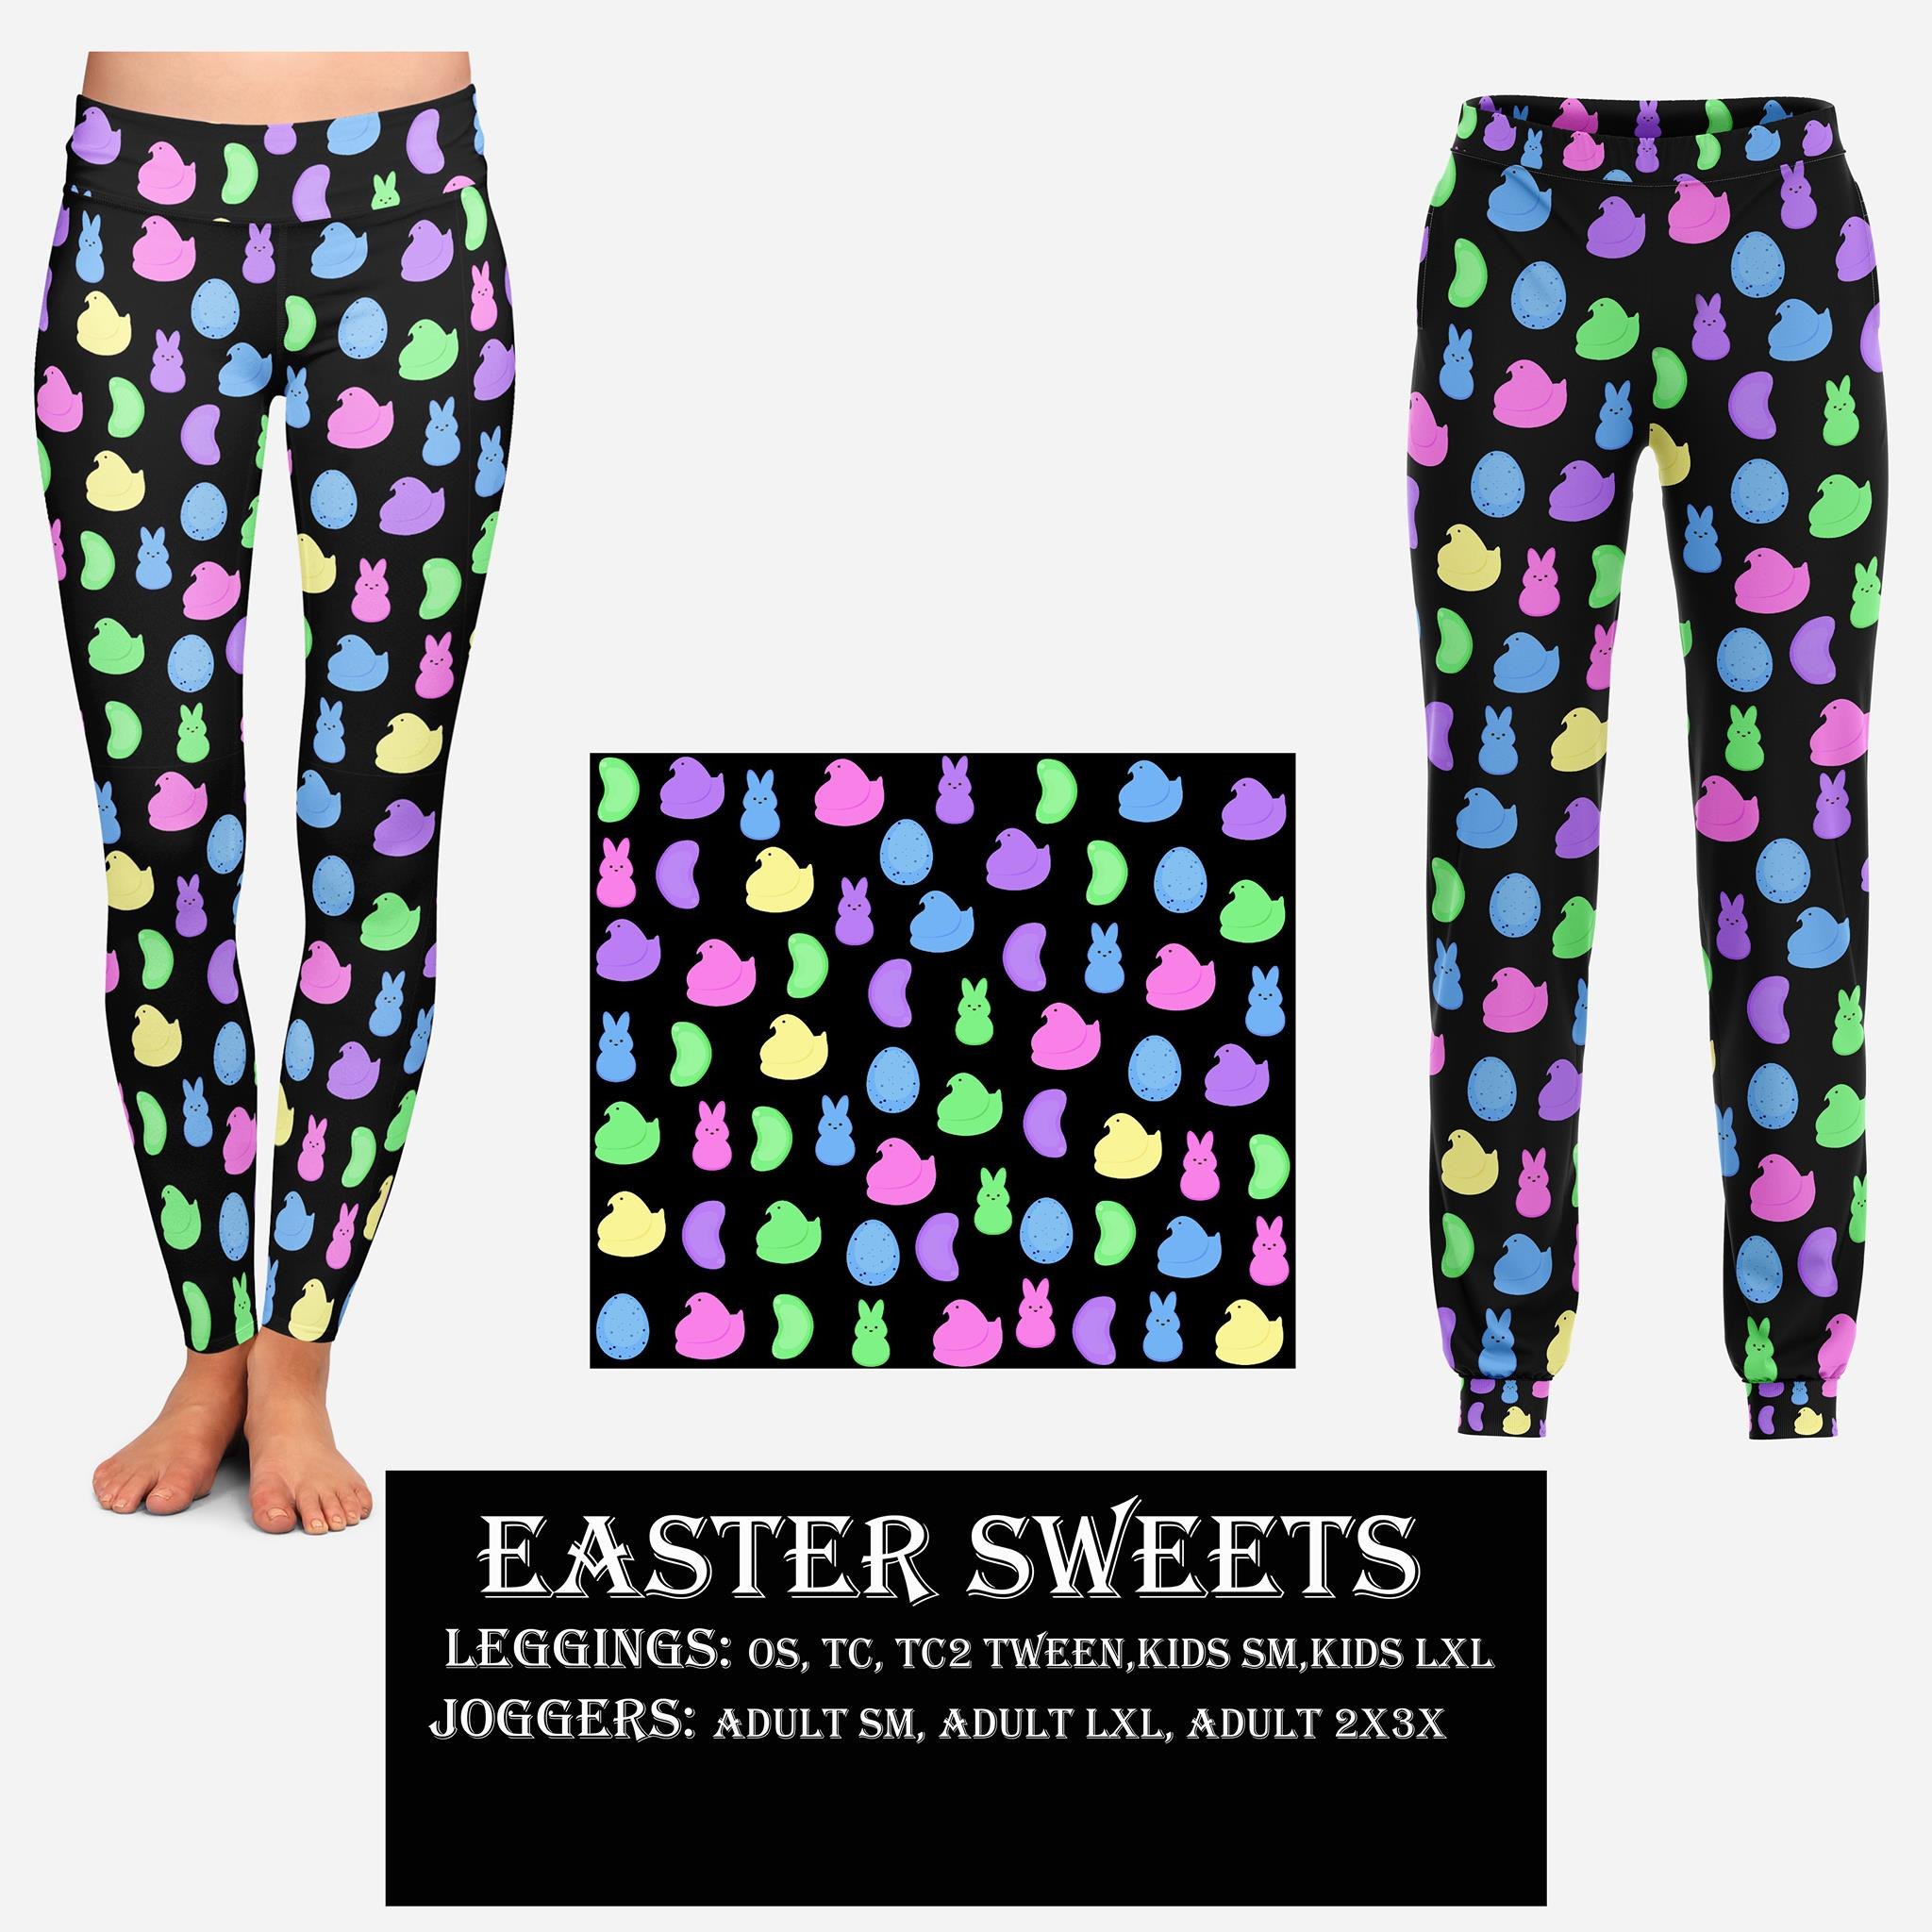 EASTER RUN- EASTER SWEETS LEGGINGS AND JOGGERS